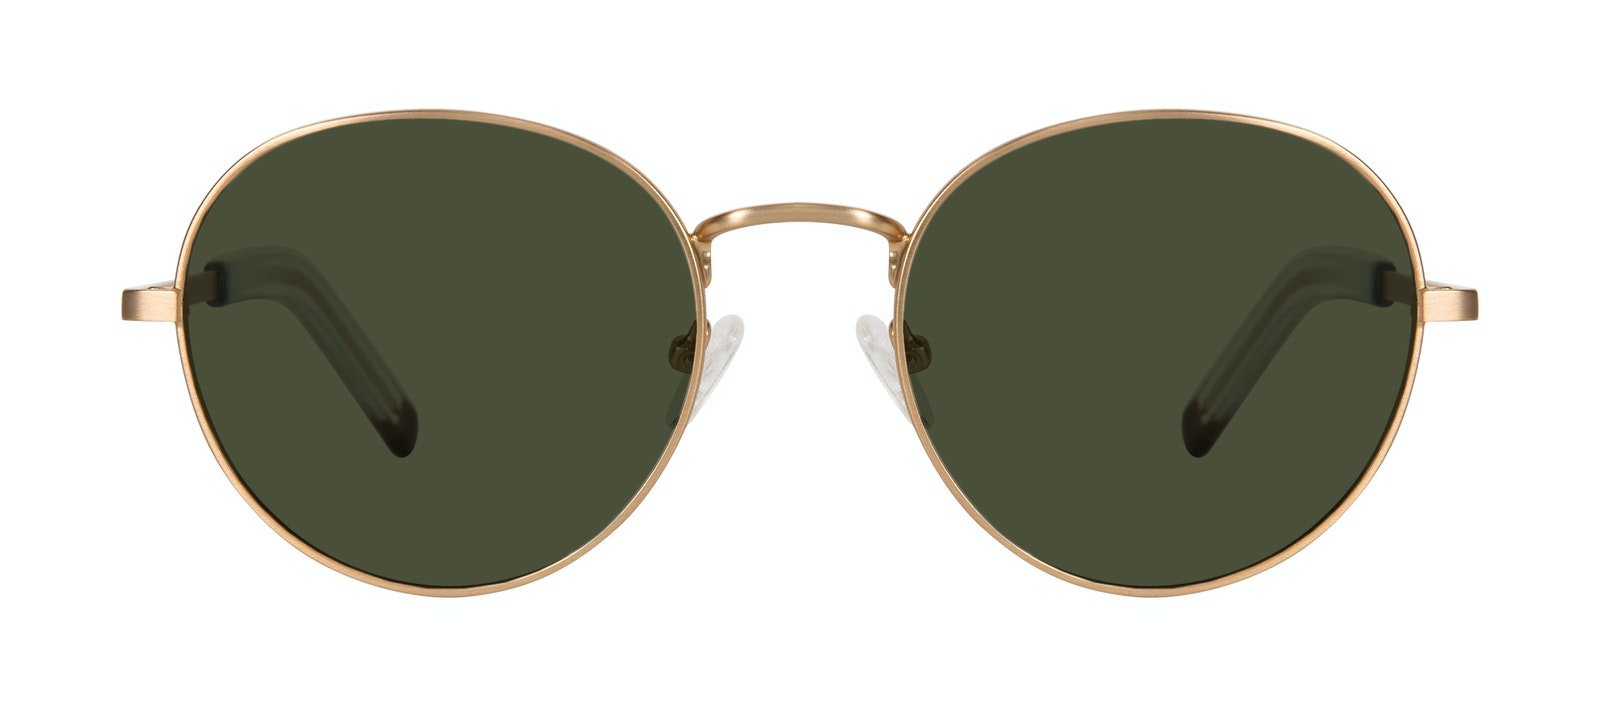 Affordable Fashion Glasses Round Sunglasses Men Lean L Gold Matte Front